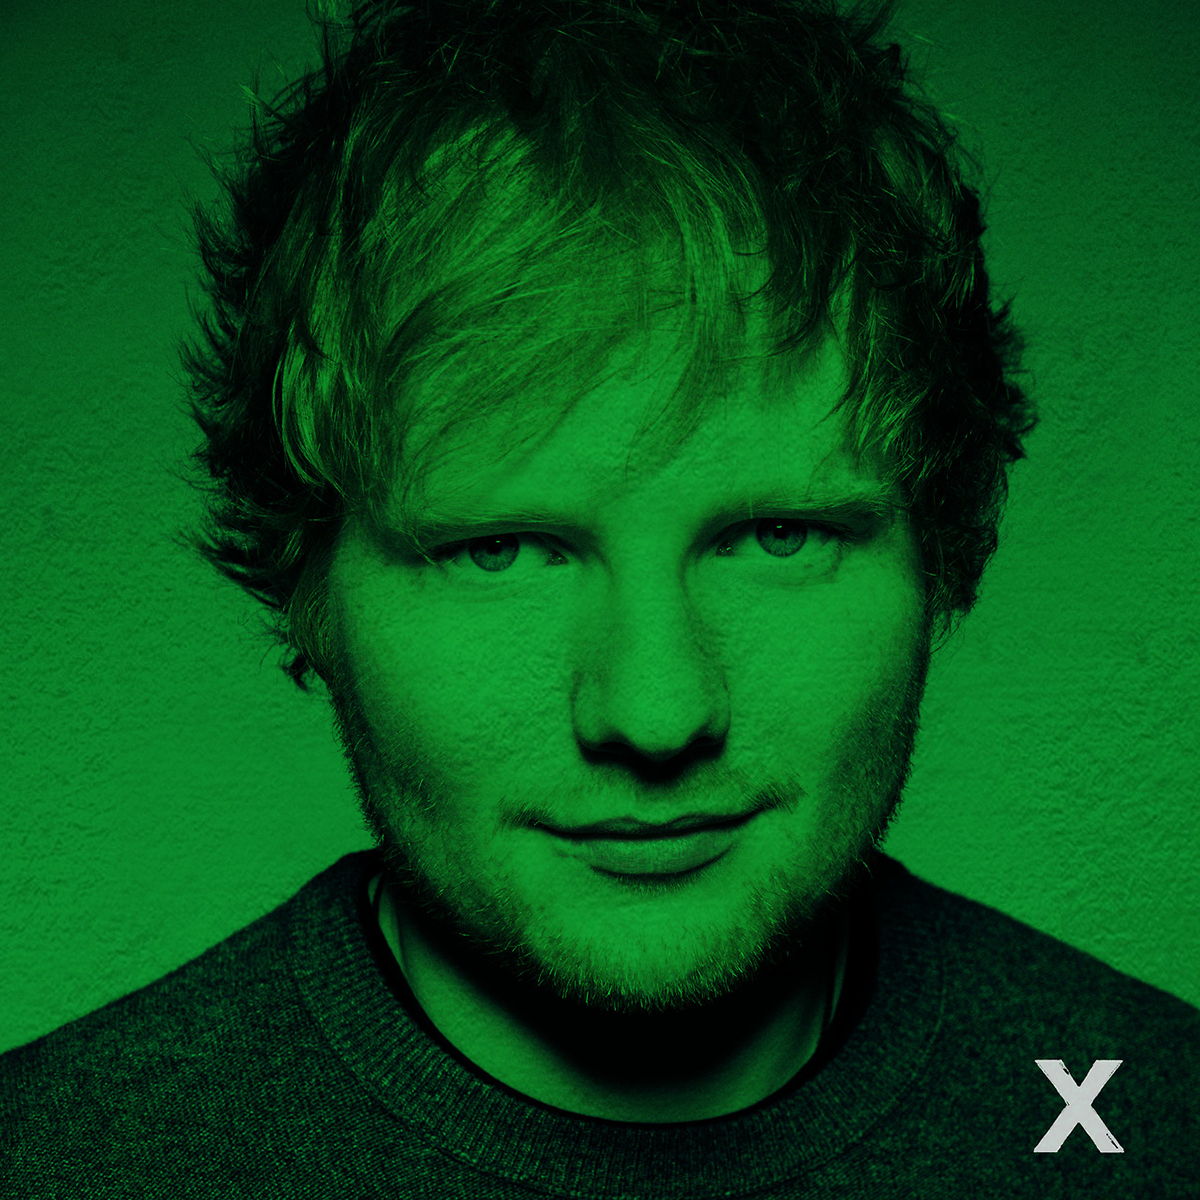 ed sheeran - photo #39